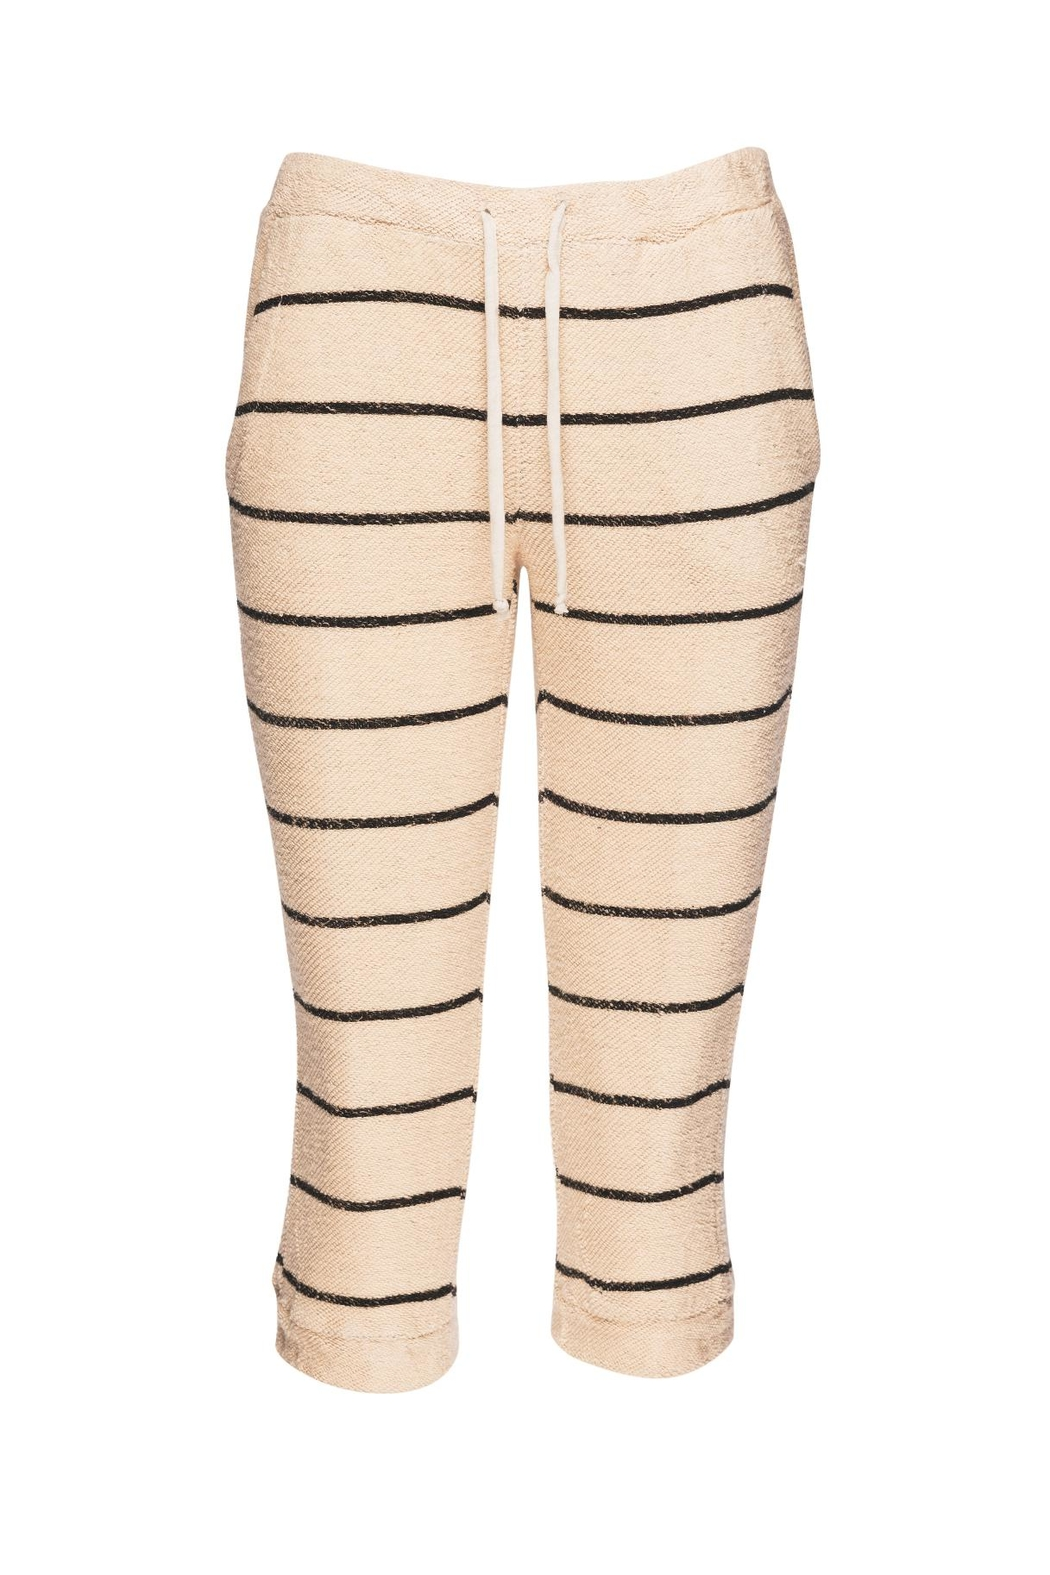 Chaser LA French Terry Beige Jogger - Main Image